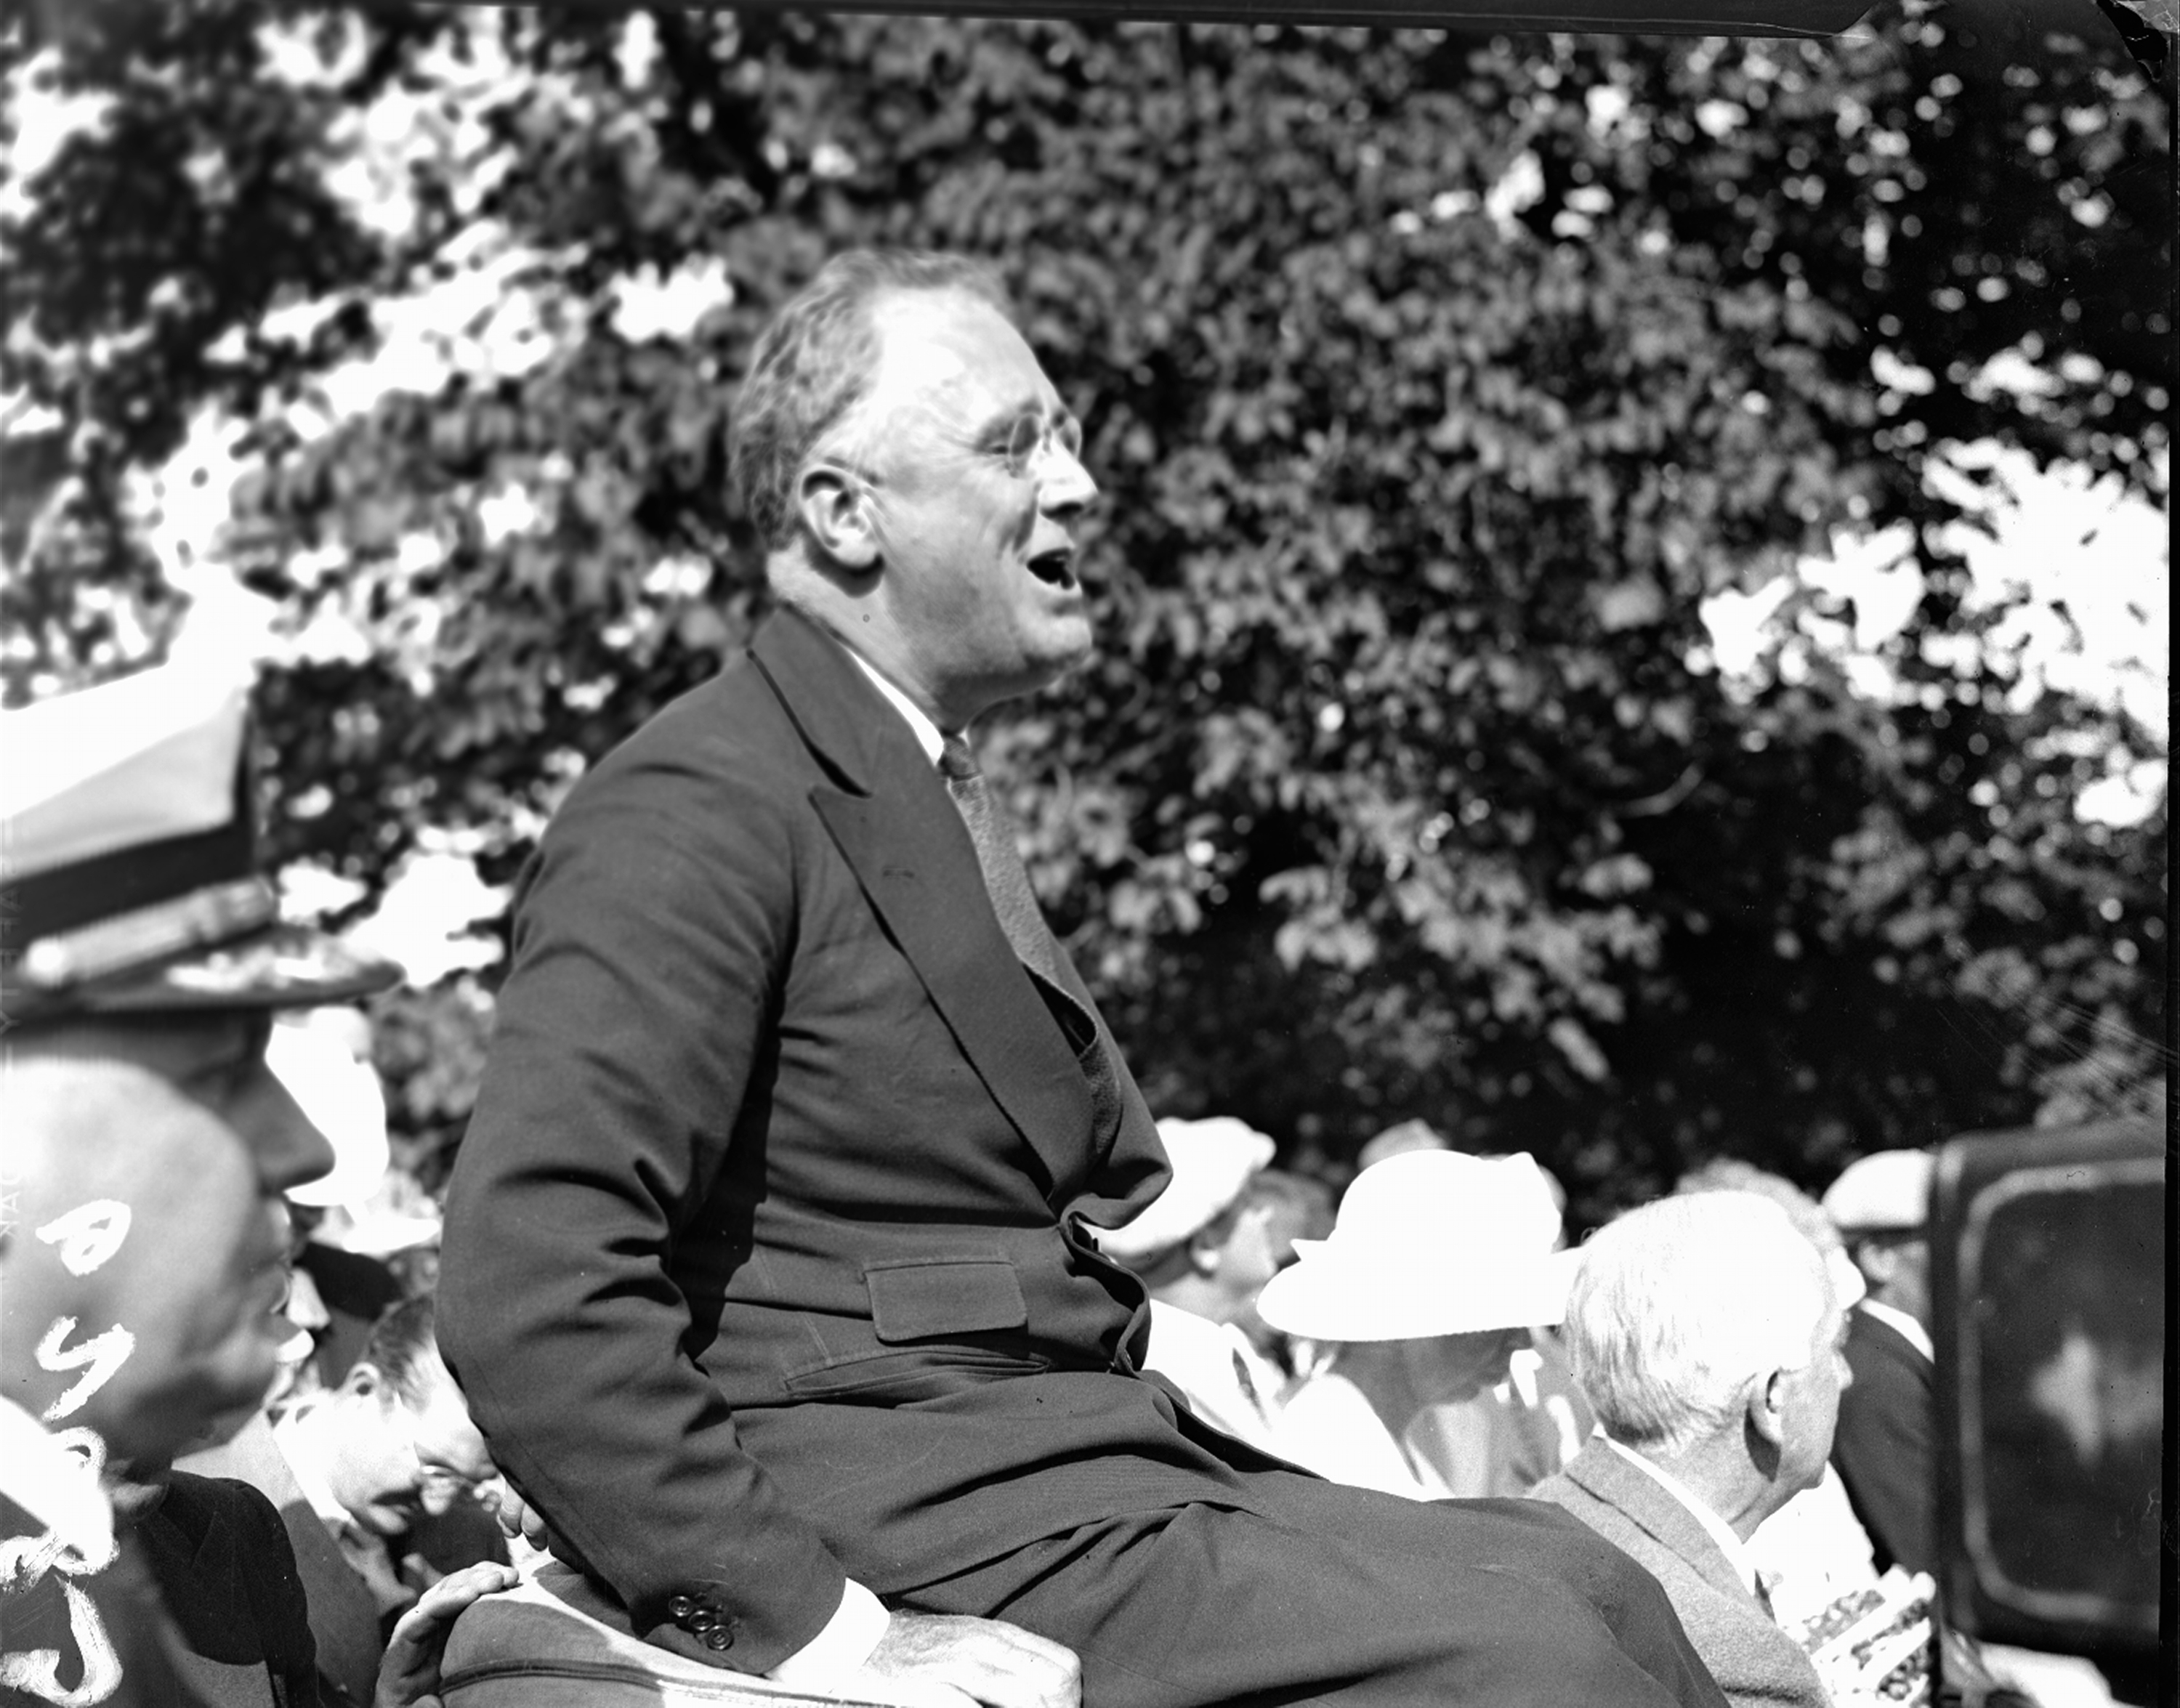 President Franklin D. Roosevelt is pictured at Campobello Island, New Brunswick, Canada, date unknown.